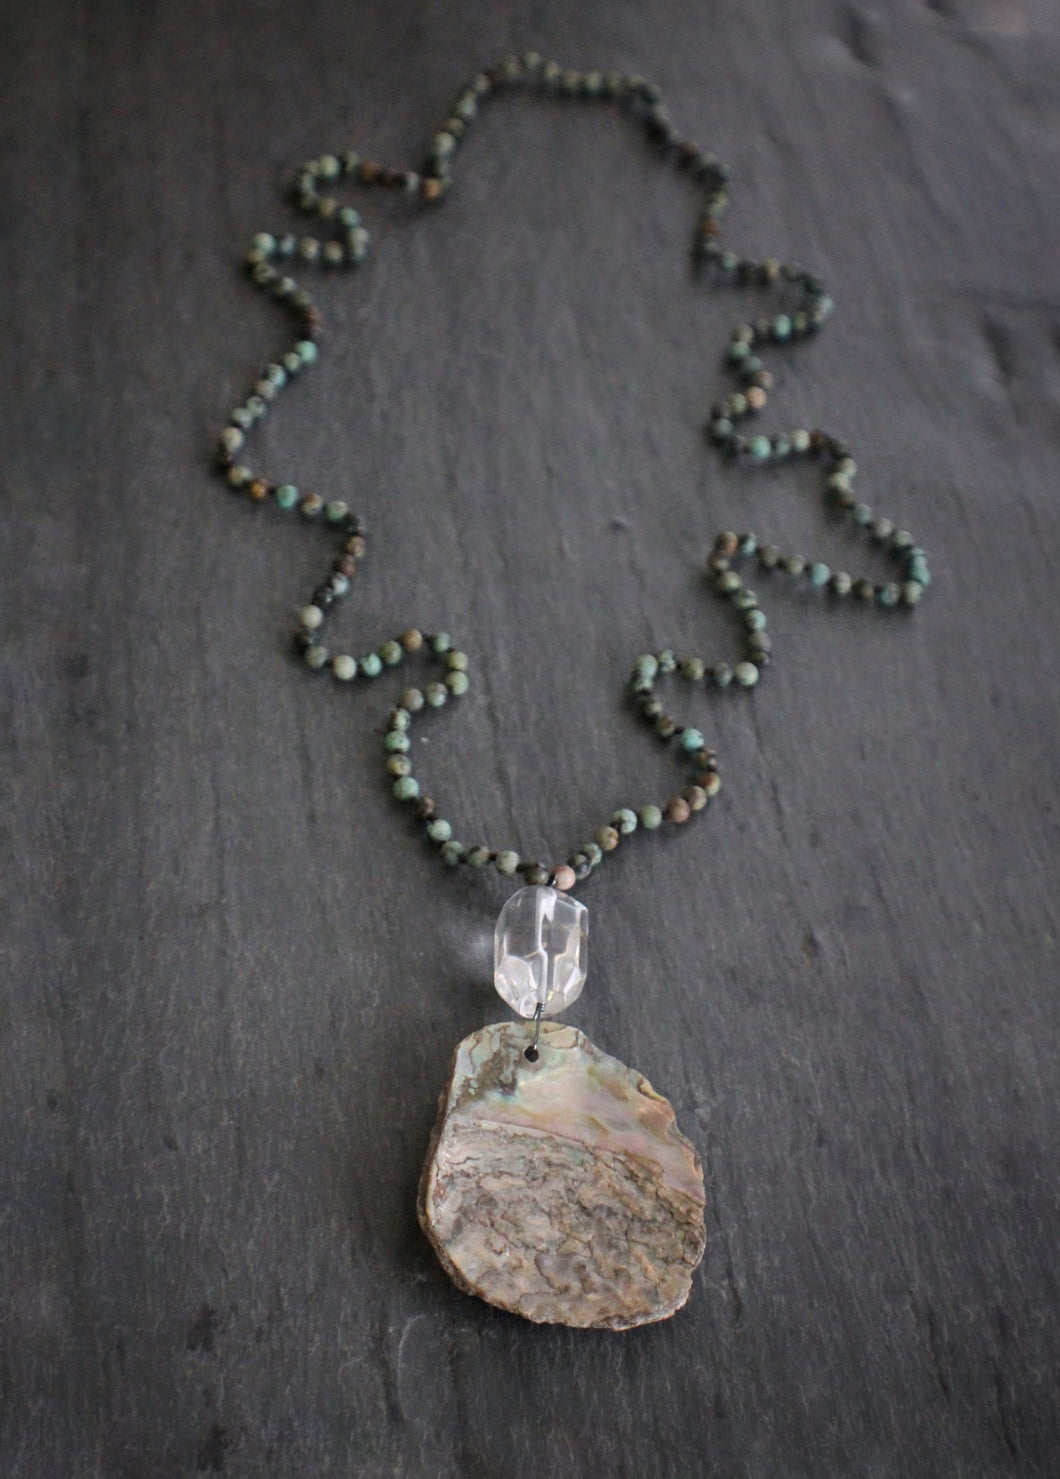 Sea and Stone Jewelry - Beaded African Turquoise Necklace with Quartz & Abalone Pendant